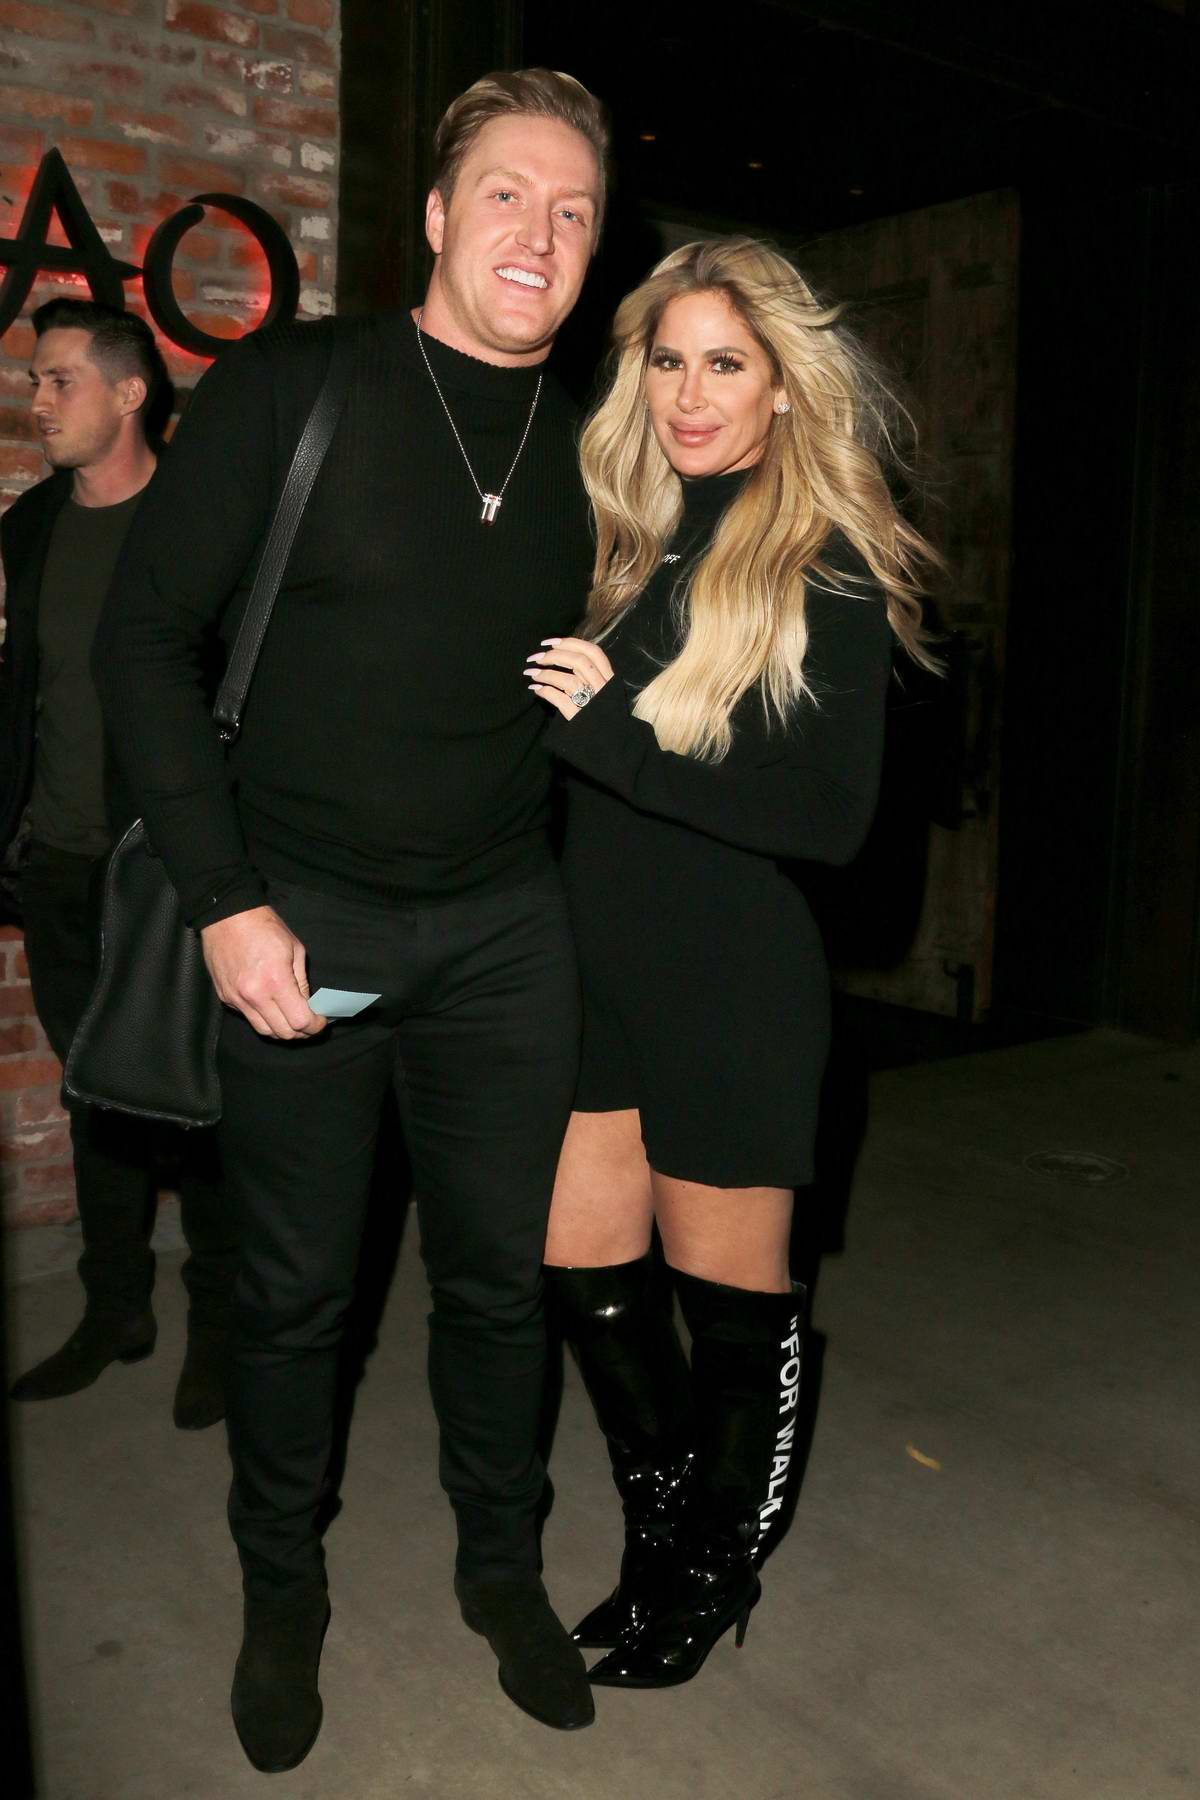 Kim Zolciak and husband Kroy Biermann leaves TAO in Hollywood, Los Angeles